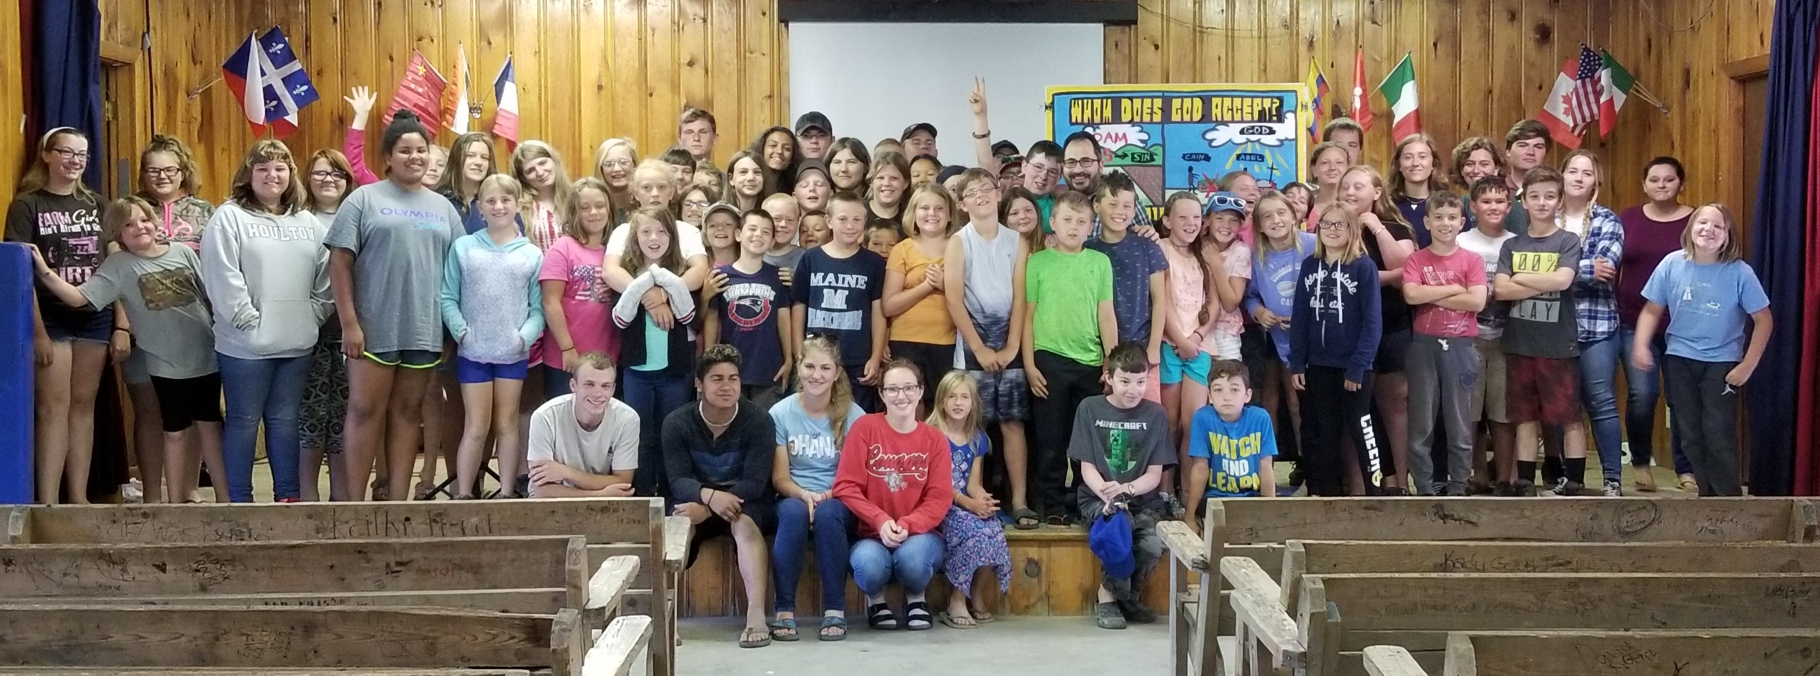 Here's the amazing Campers and Counselors who I got to share Jesus with at camp. Of the 60+ kids, 10 publicly professed to repenting of their sin and believing in Jesus for the first time. About the same number admitted to already being born again, but being distracted by the world, and they committed to get rid of any idols inhibiting them. I praise God for the tremendous work He's doing! Hallelujah!